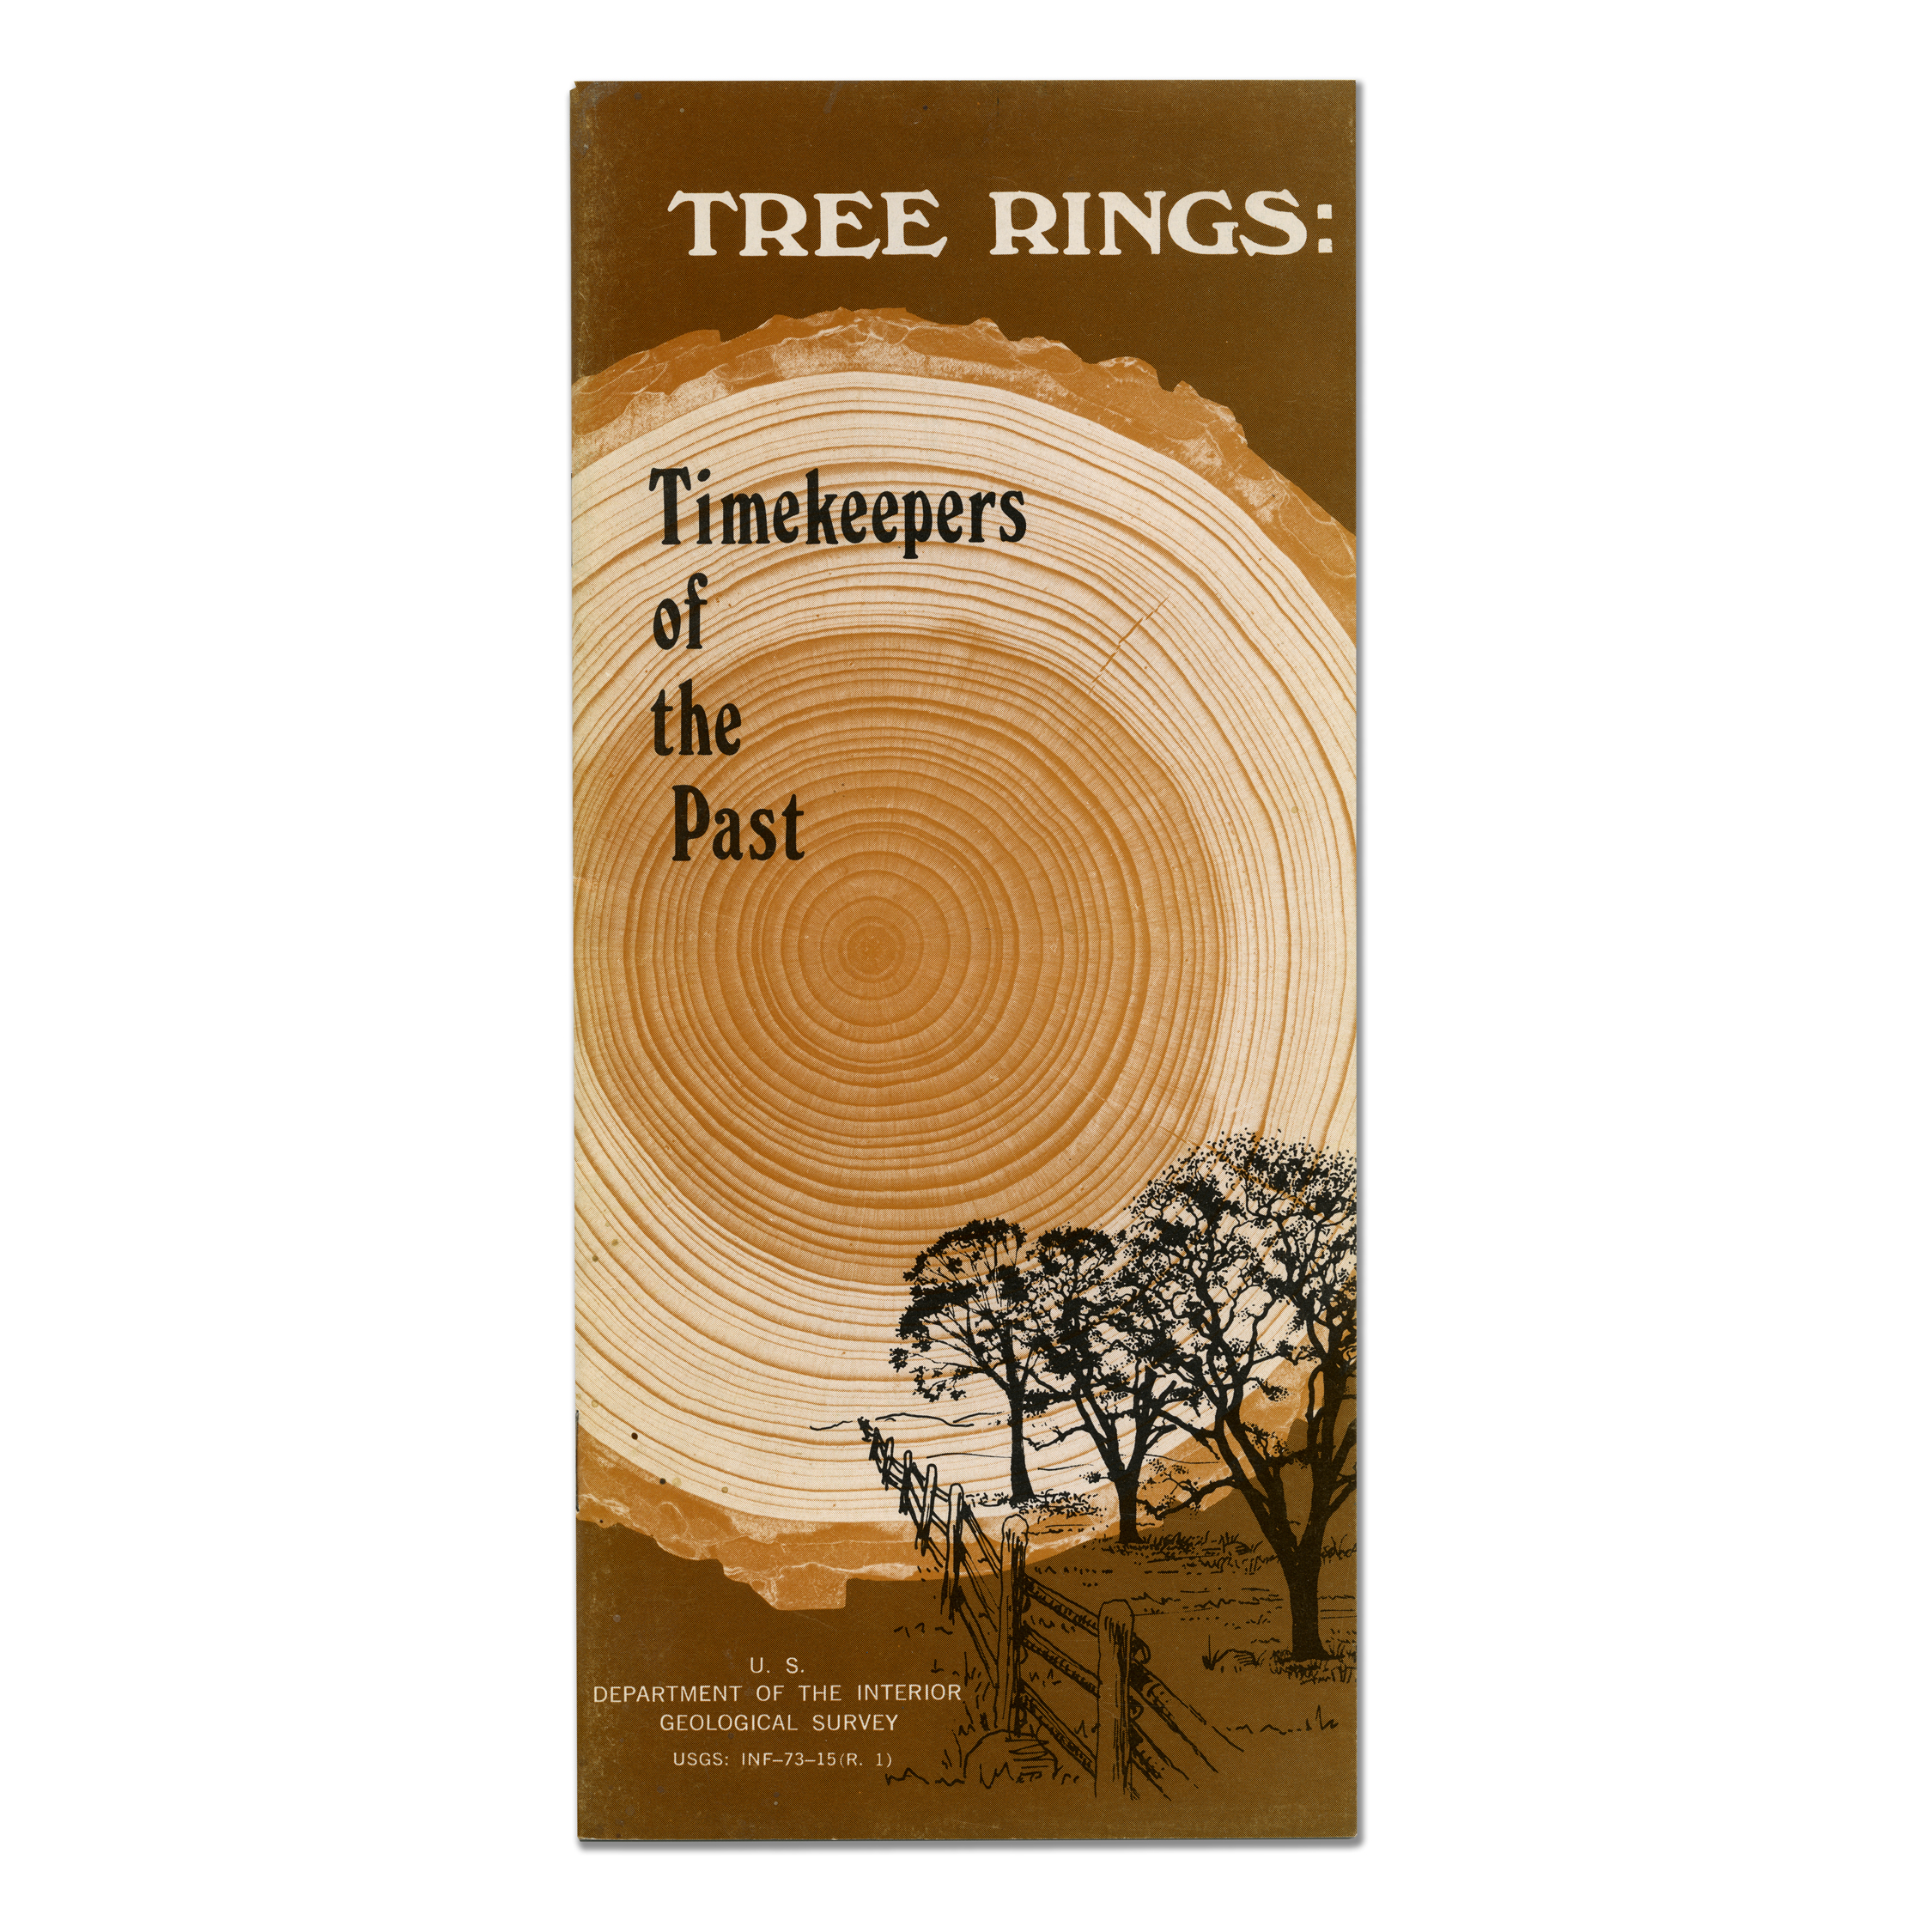 197_department_of_interior_tree_rings_brochure.jpg